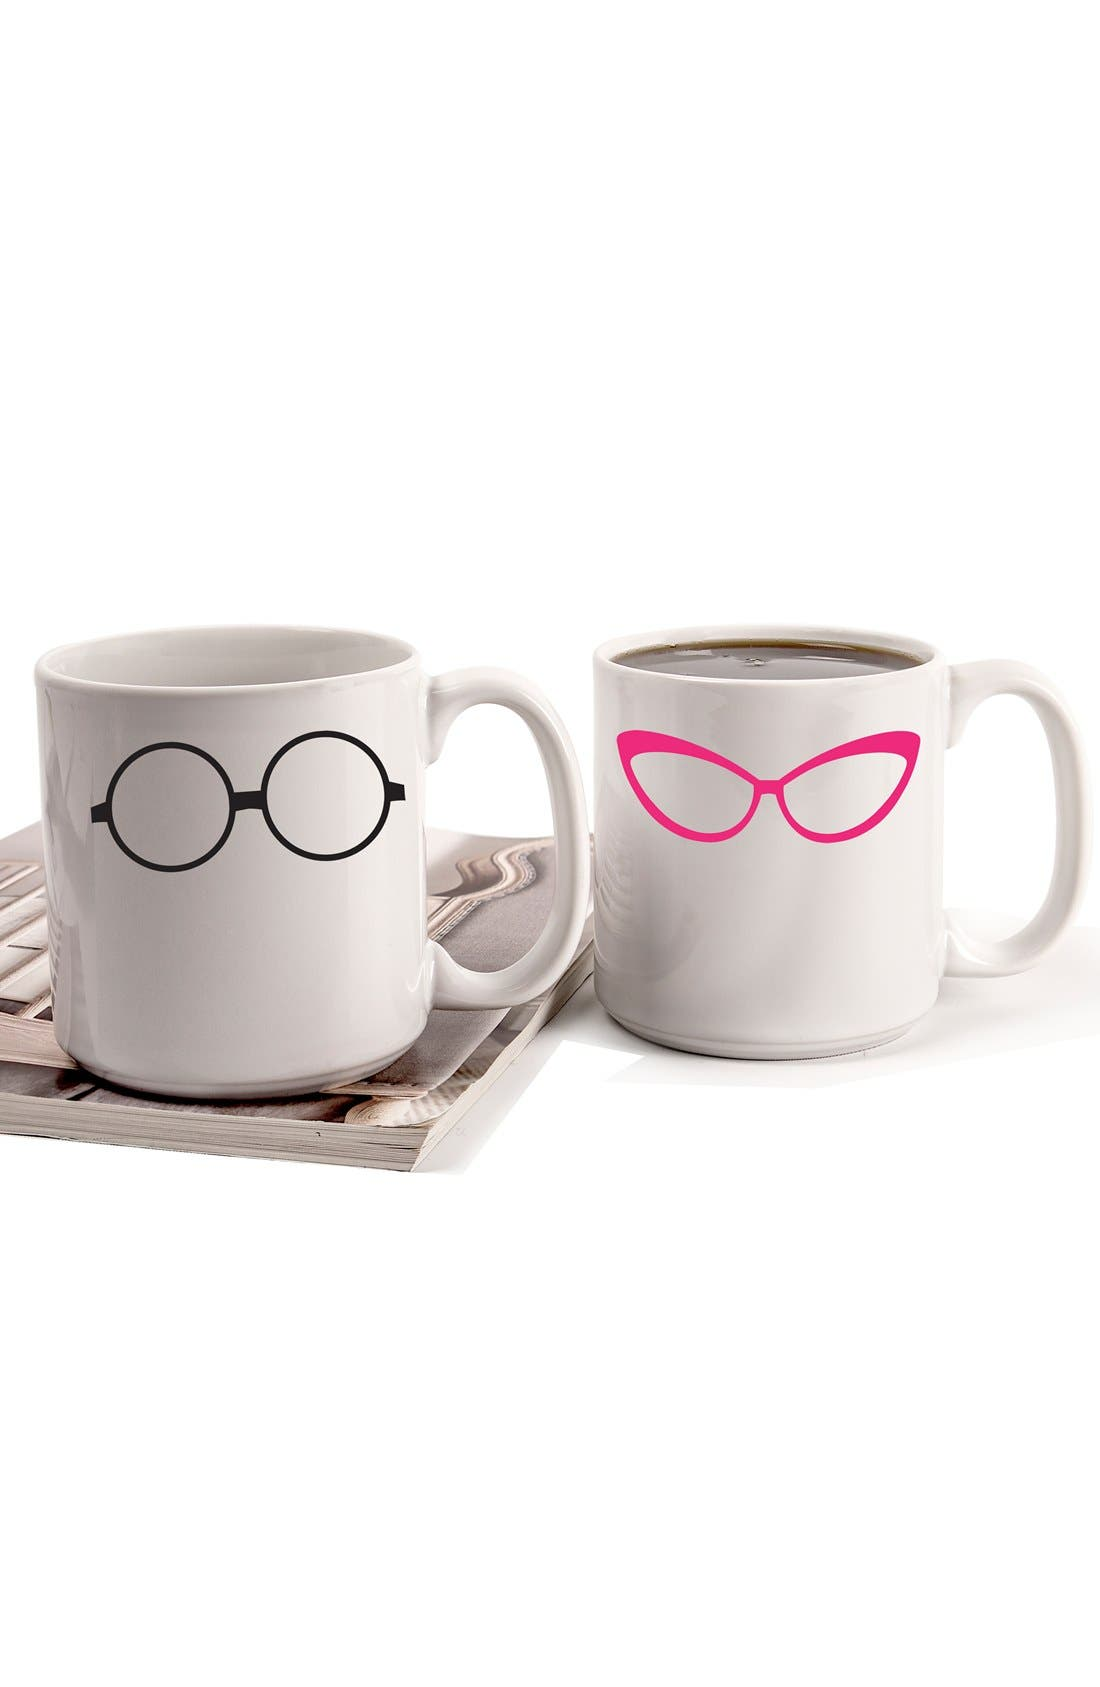 Alternate Image 3  - Cathy's Concepts 'Geek Glasses' Ceramic Coffee Mugs (Set of 2)